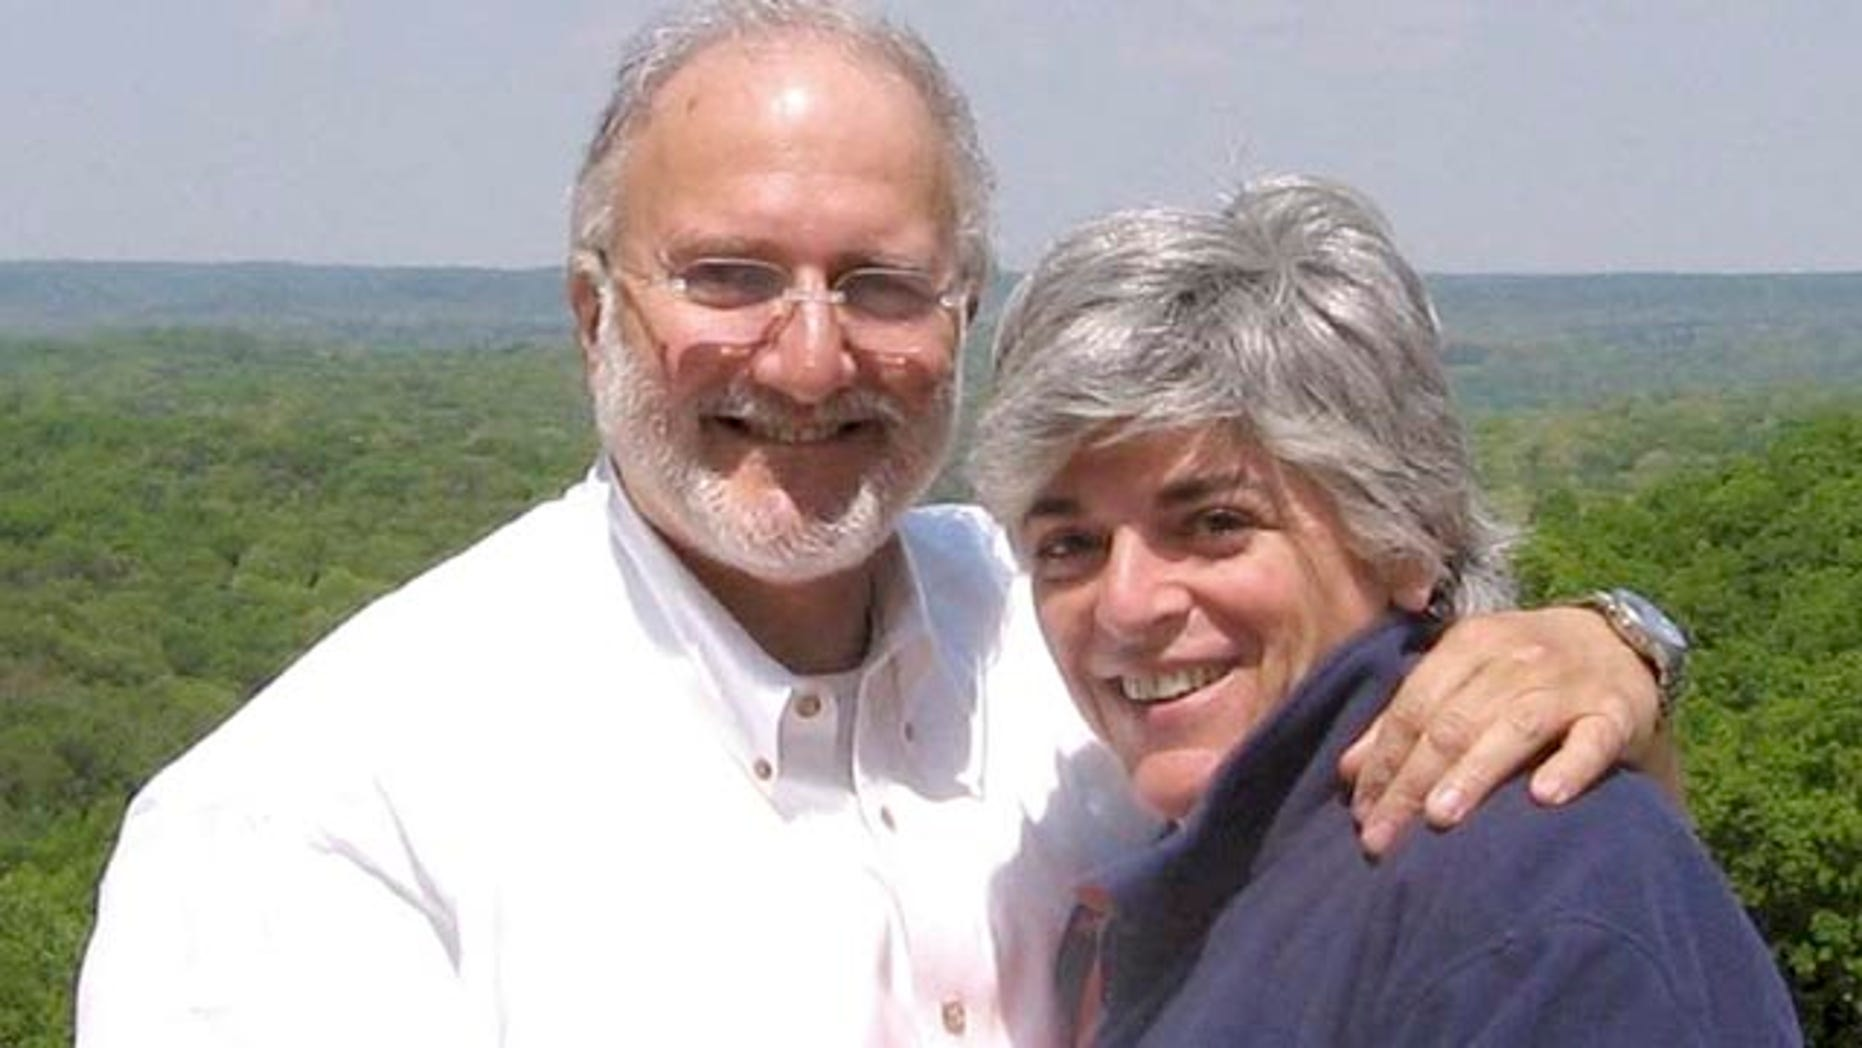 Alan Gross and his wife, Judy. Gross, a 61-year-old Maryland native, was arrested in 2009 by Cuban authorities and charged with undermining the Cuban government by bringing communications equipment onto the island illegally.